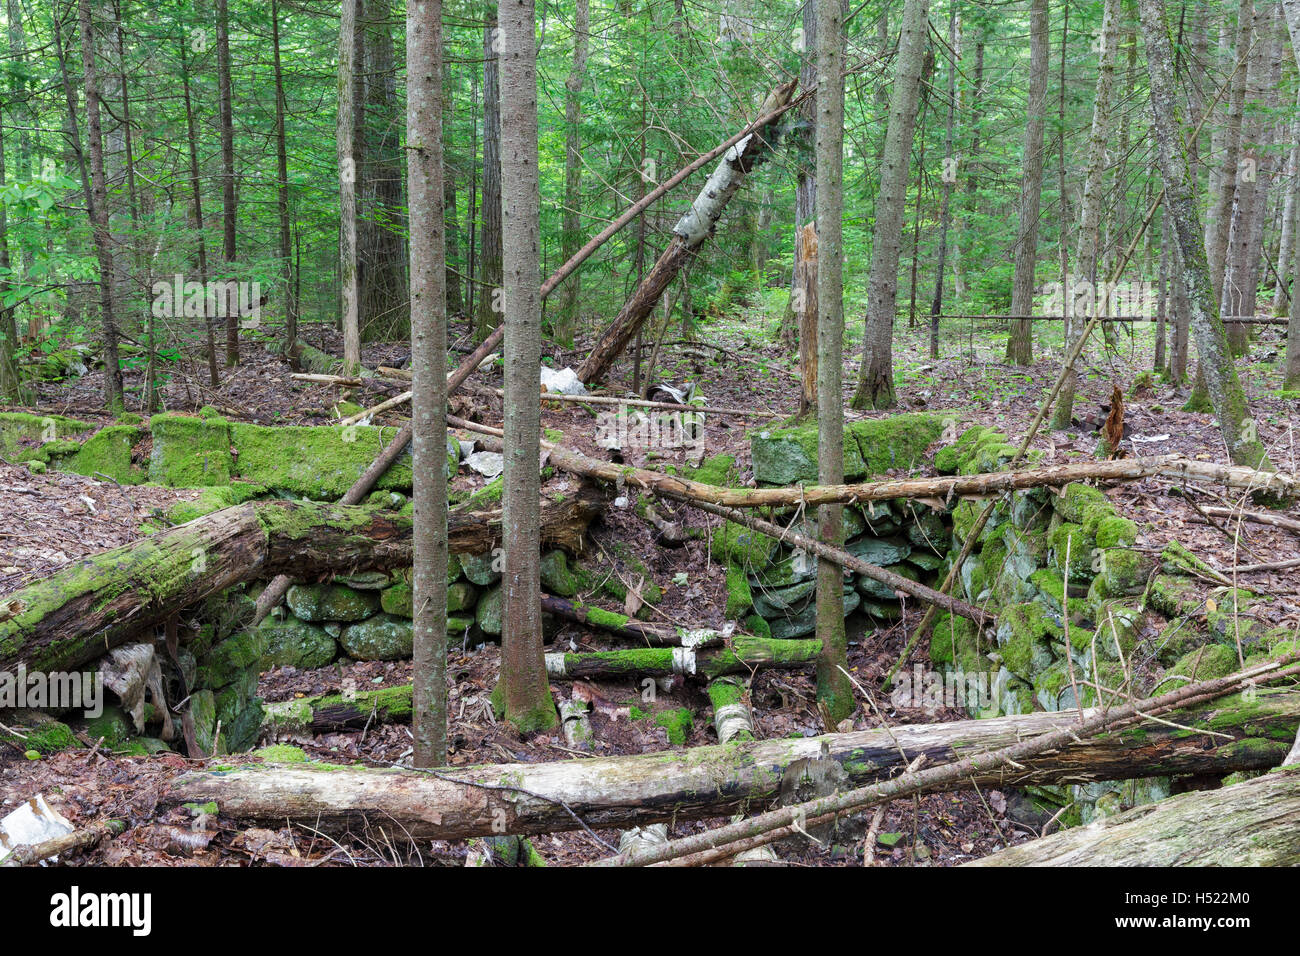 Abandoned cellar hole at the site of Merrill's Mountain House in Warren, New Hampshire during the summer months. - Stock Image